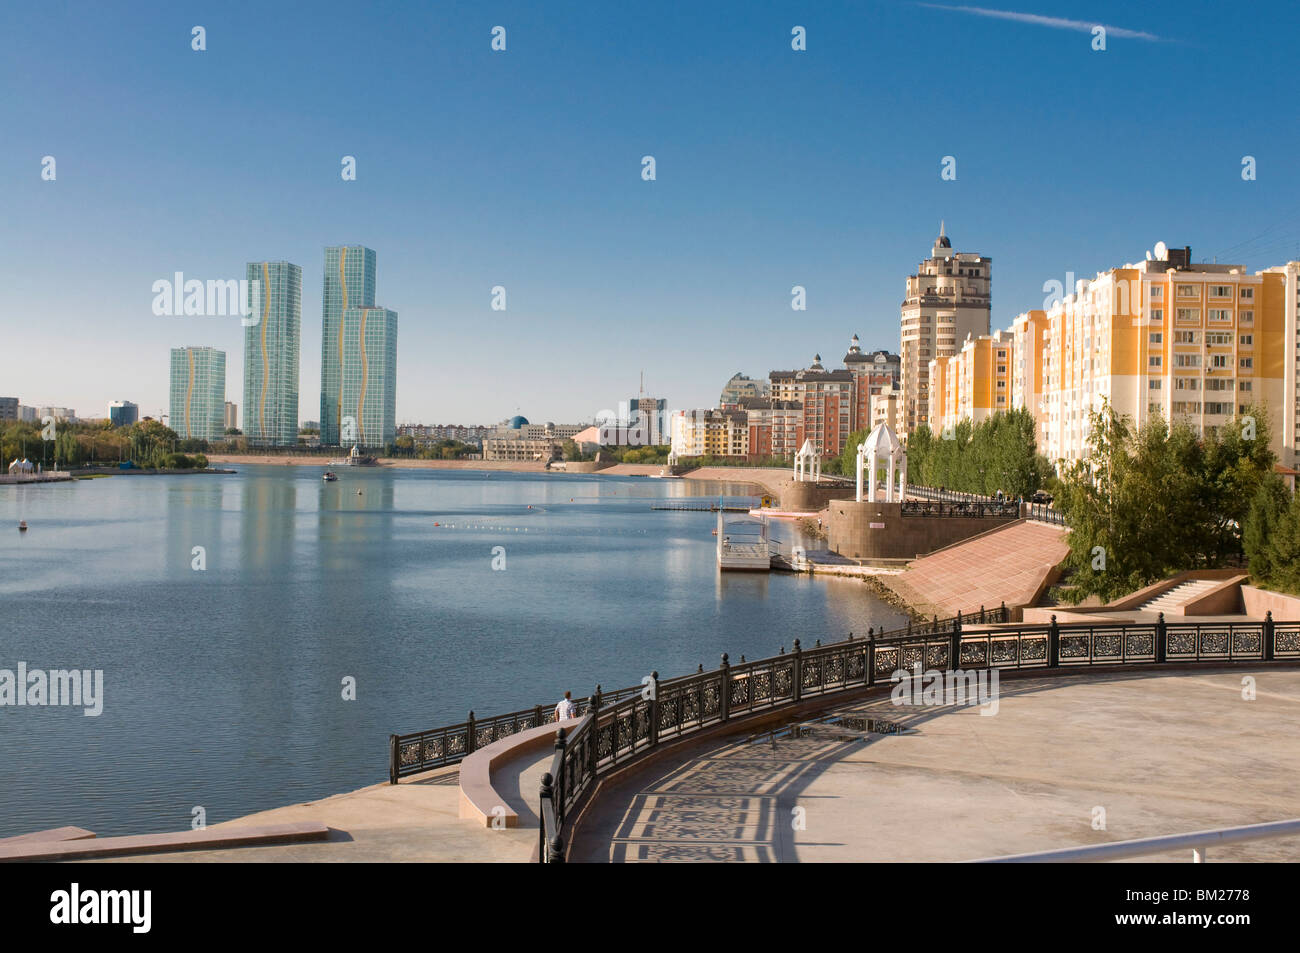 Skyline of Astana with skyscrapers, Astana, Kazakhstan, Central Asia - Stock Image